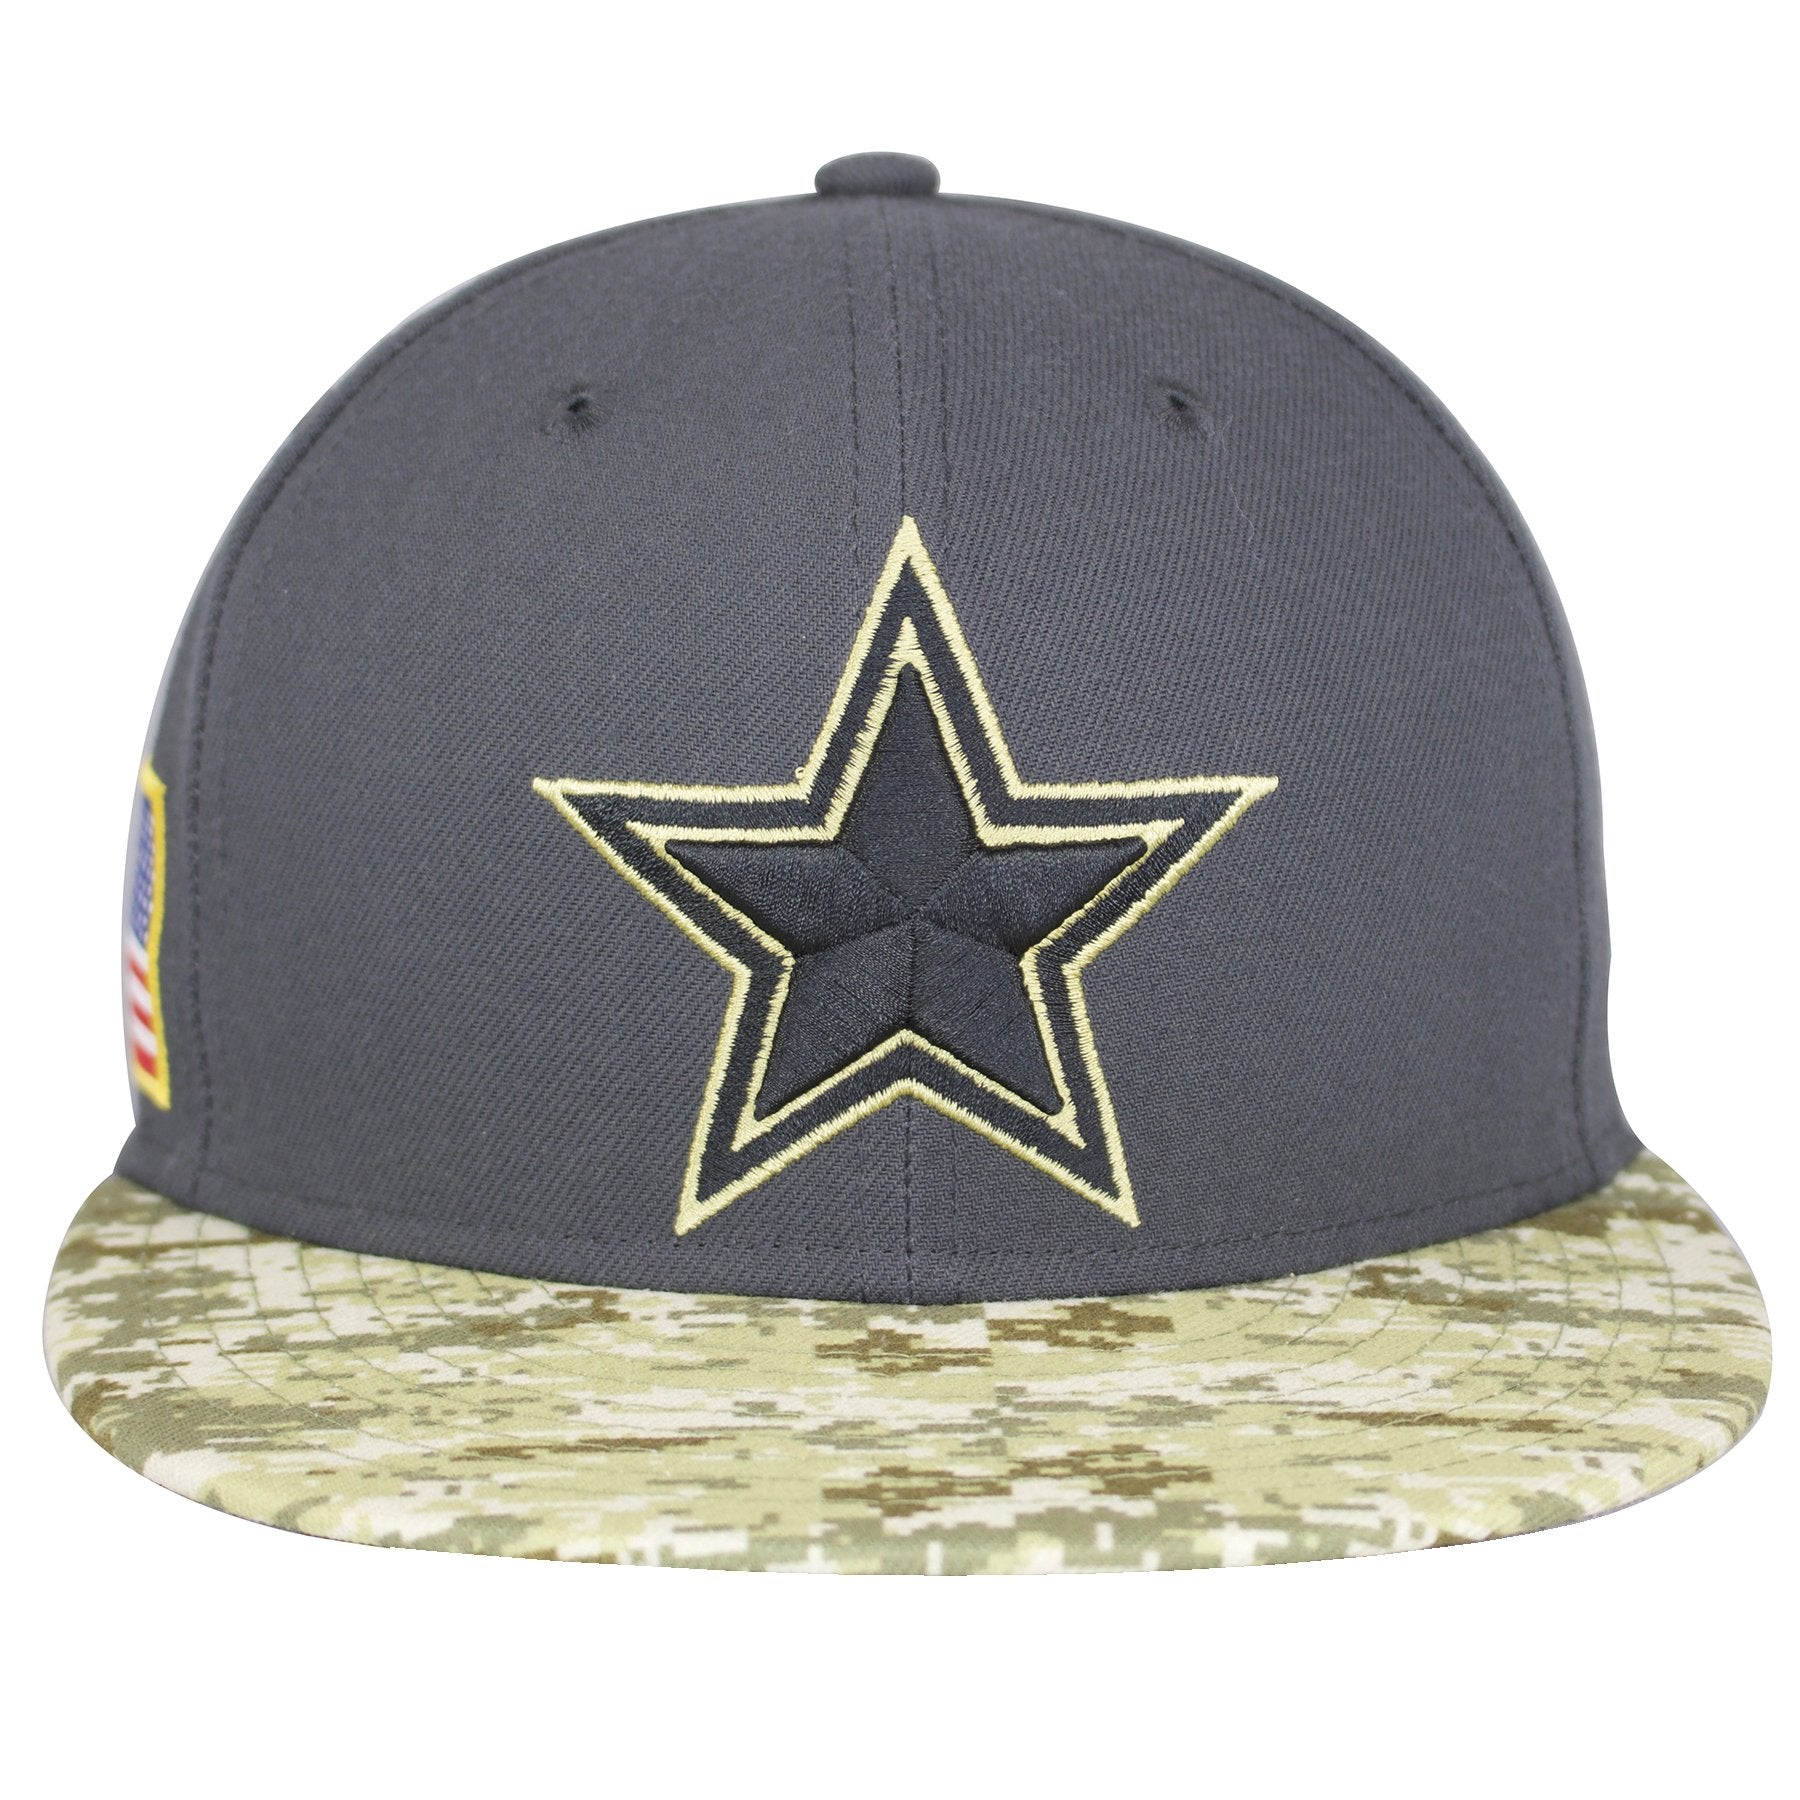 the dallas cowboys 2016 salute to service fitted cap has a gray crown and a  digital 63d757f41